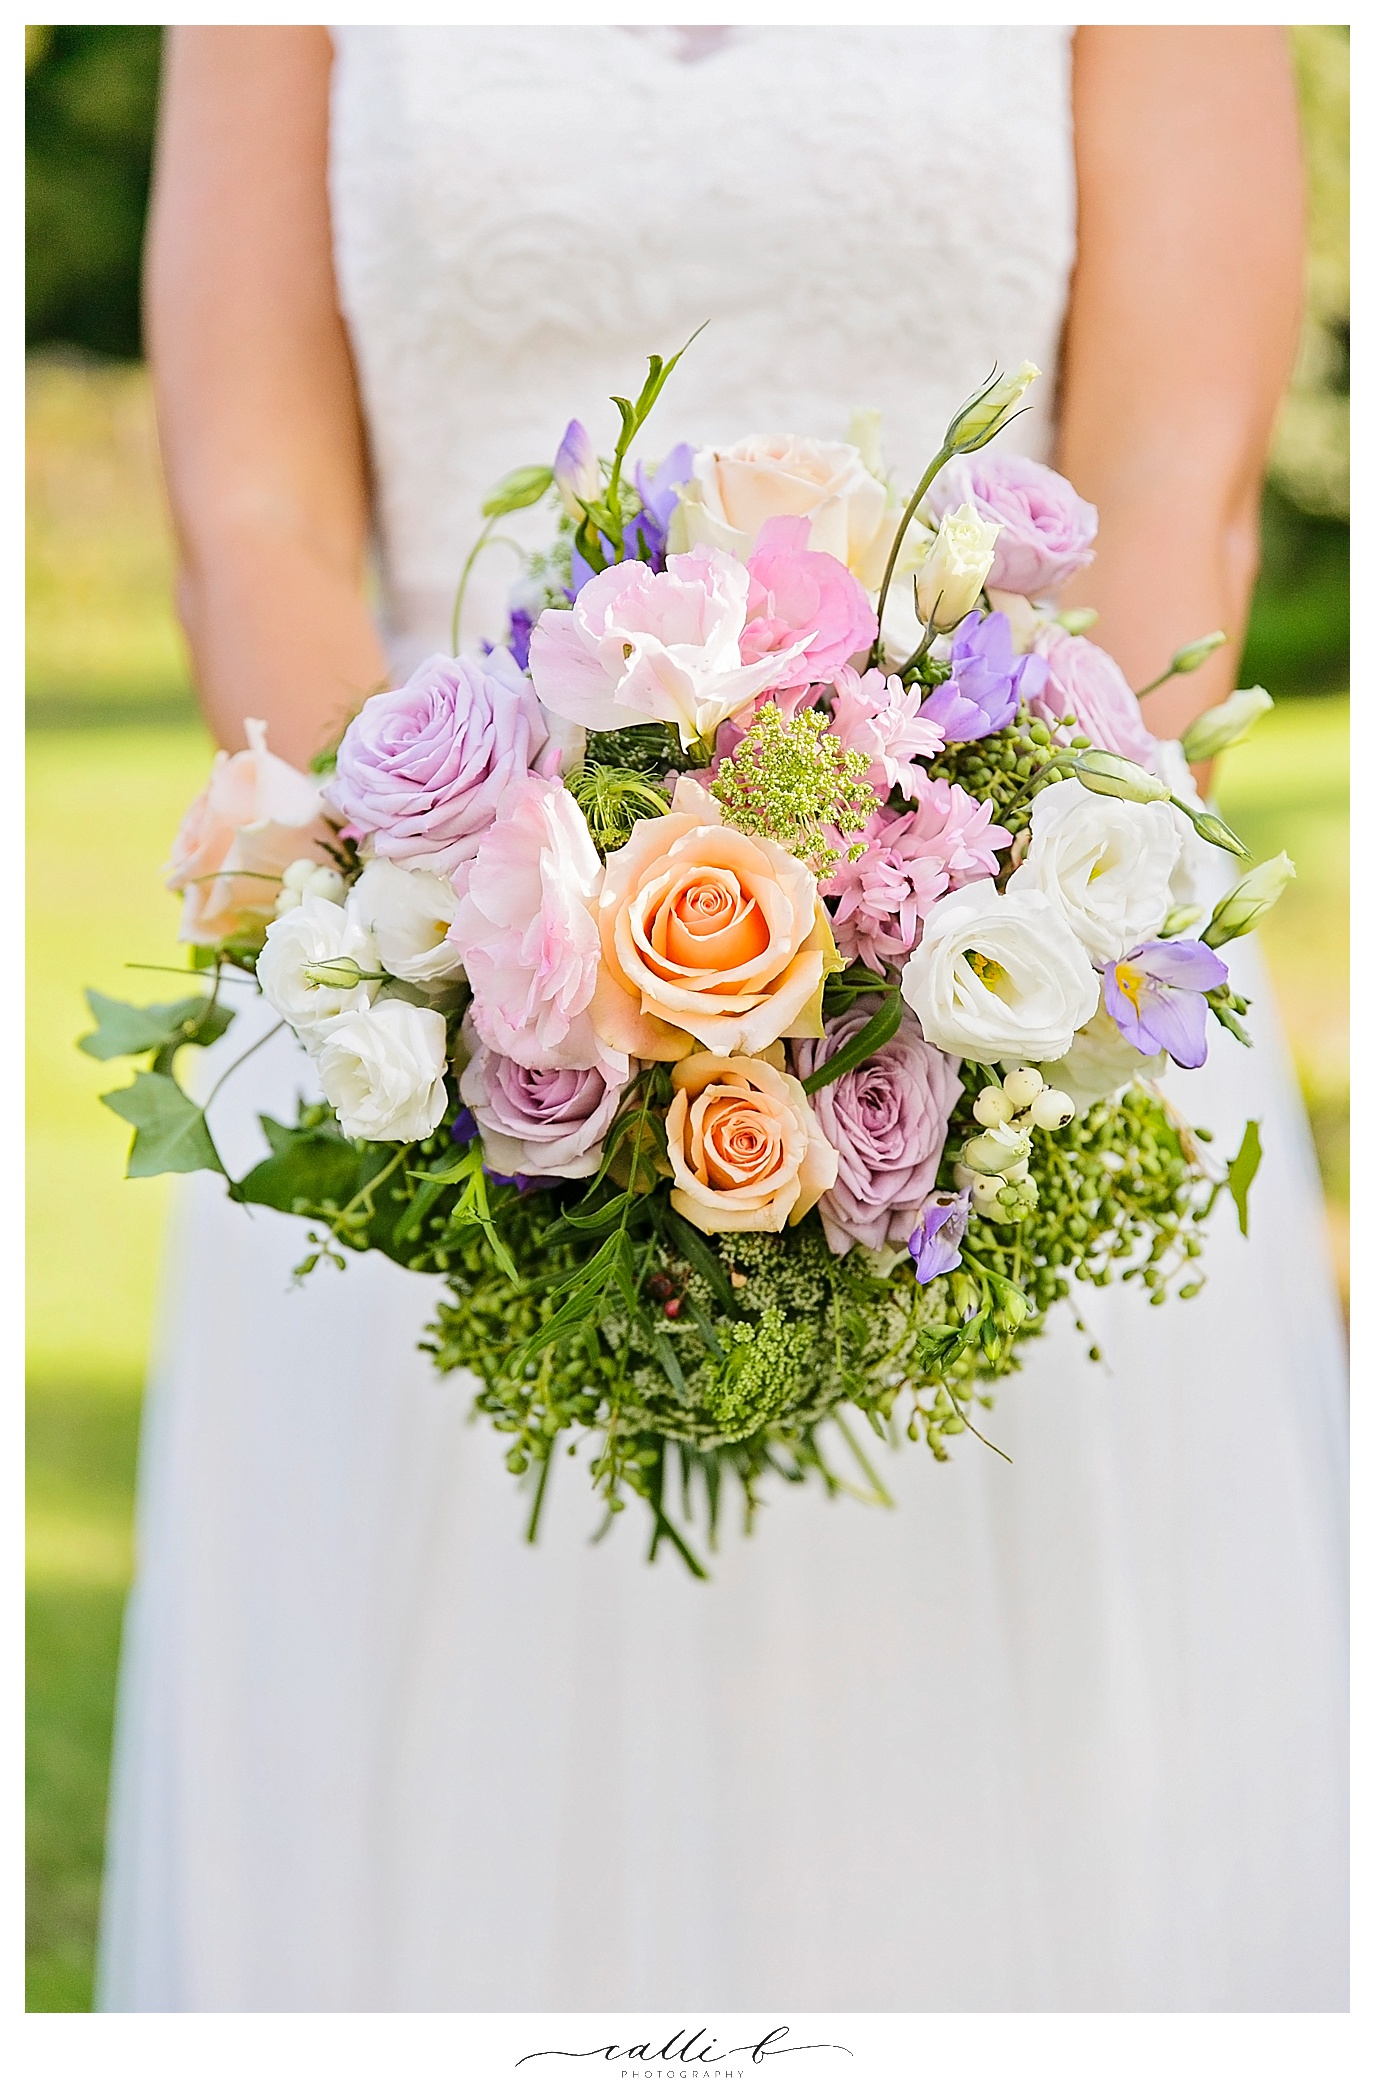 Pastel wedding bouquet featuring roses and lisianthus